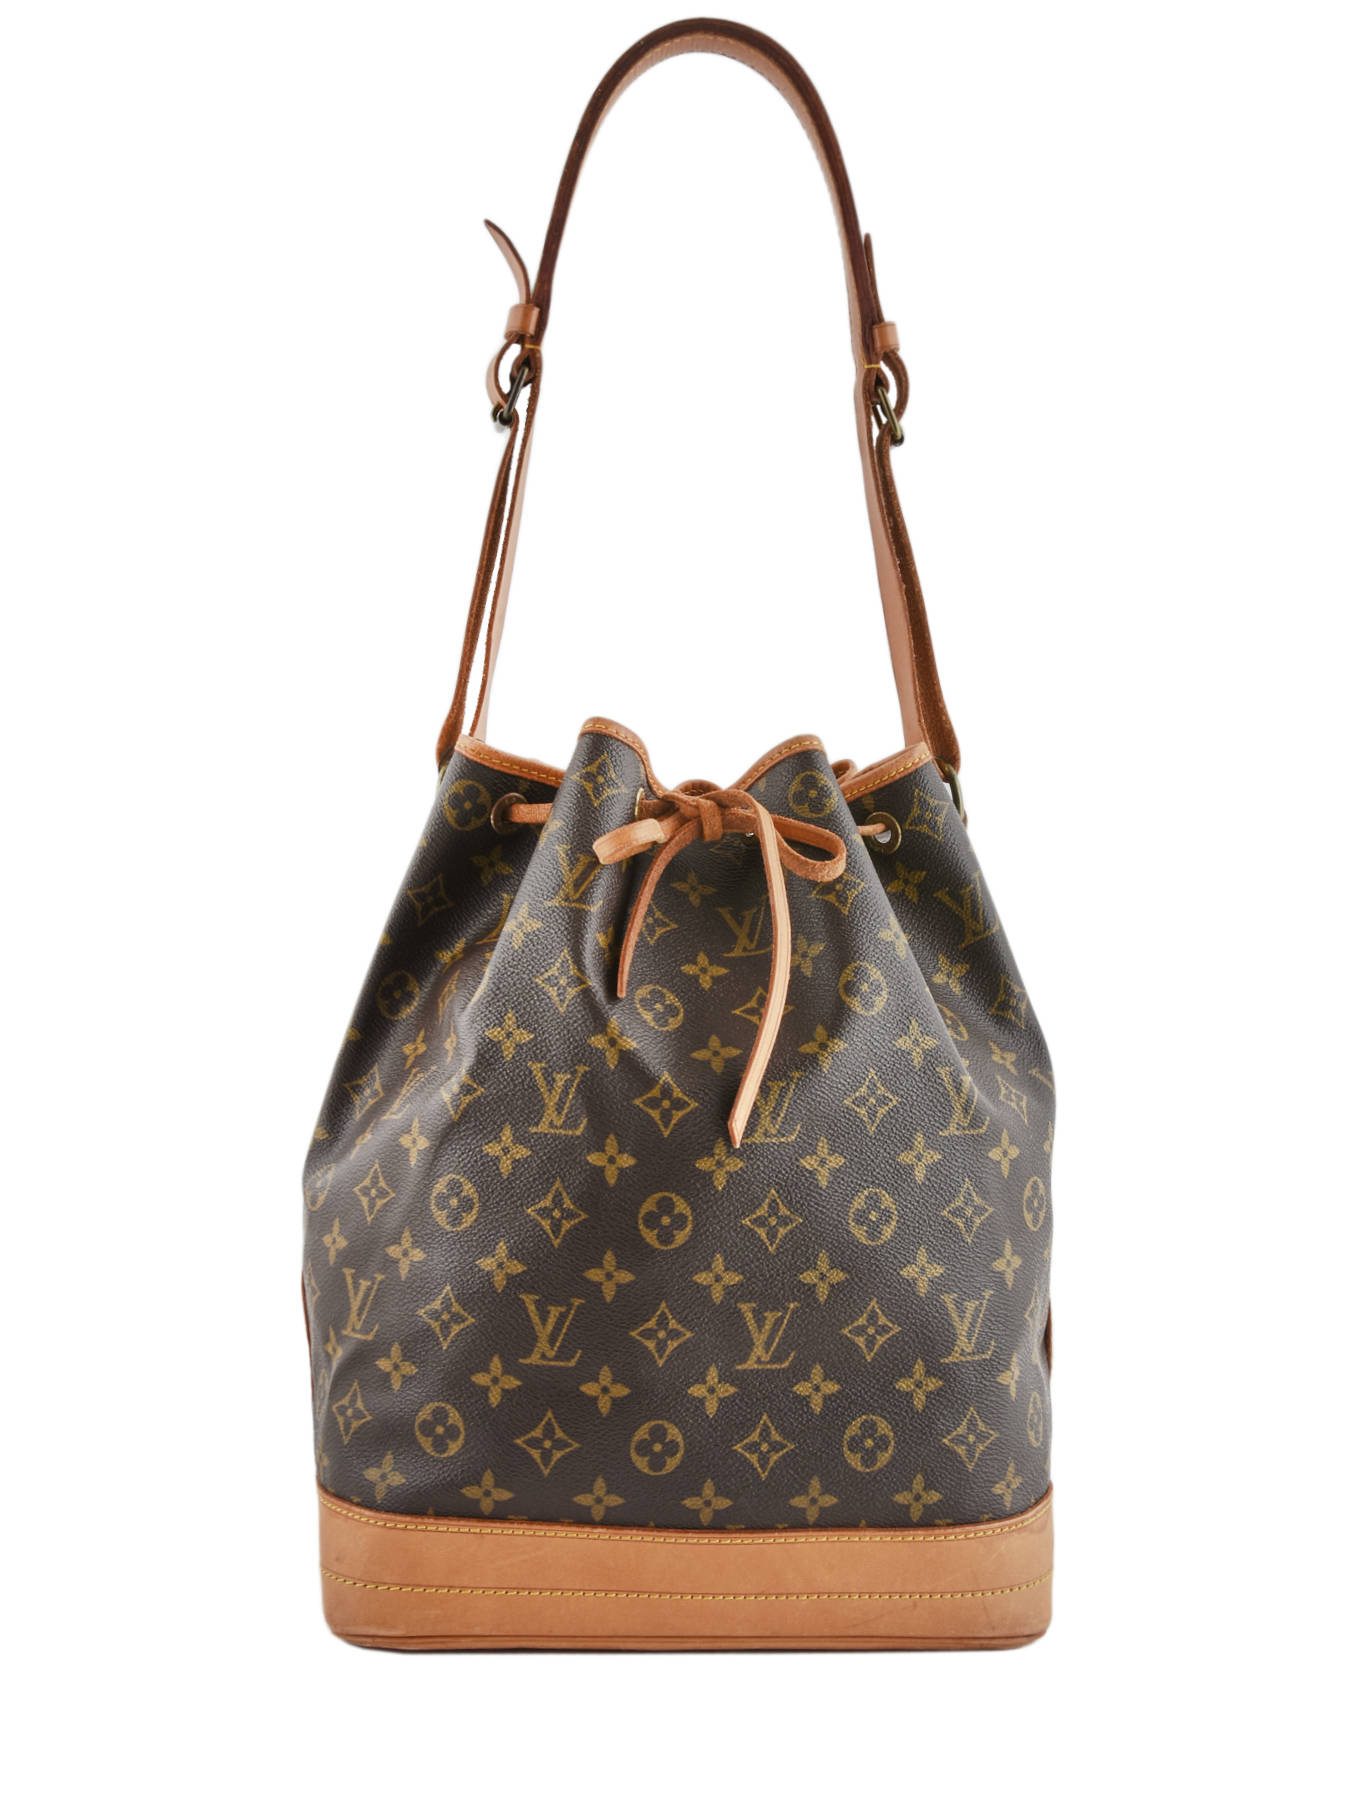 e606a0b6eb ... Sac Bourse D'occasion Louis Vuitton Noe Gm Monogrammé Brand connection  Marron louis vuitton ...